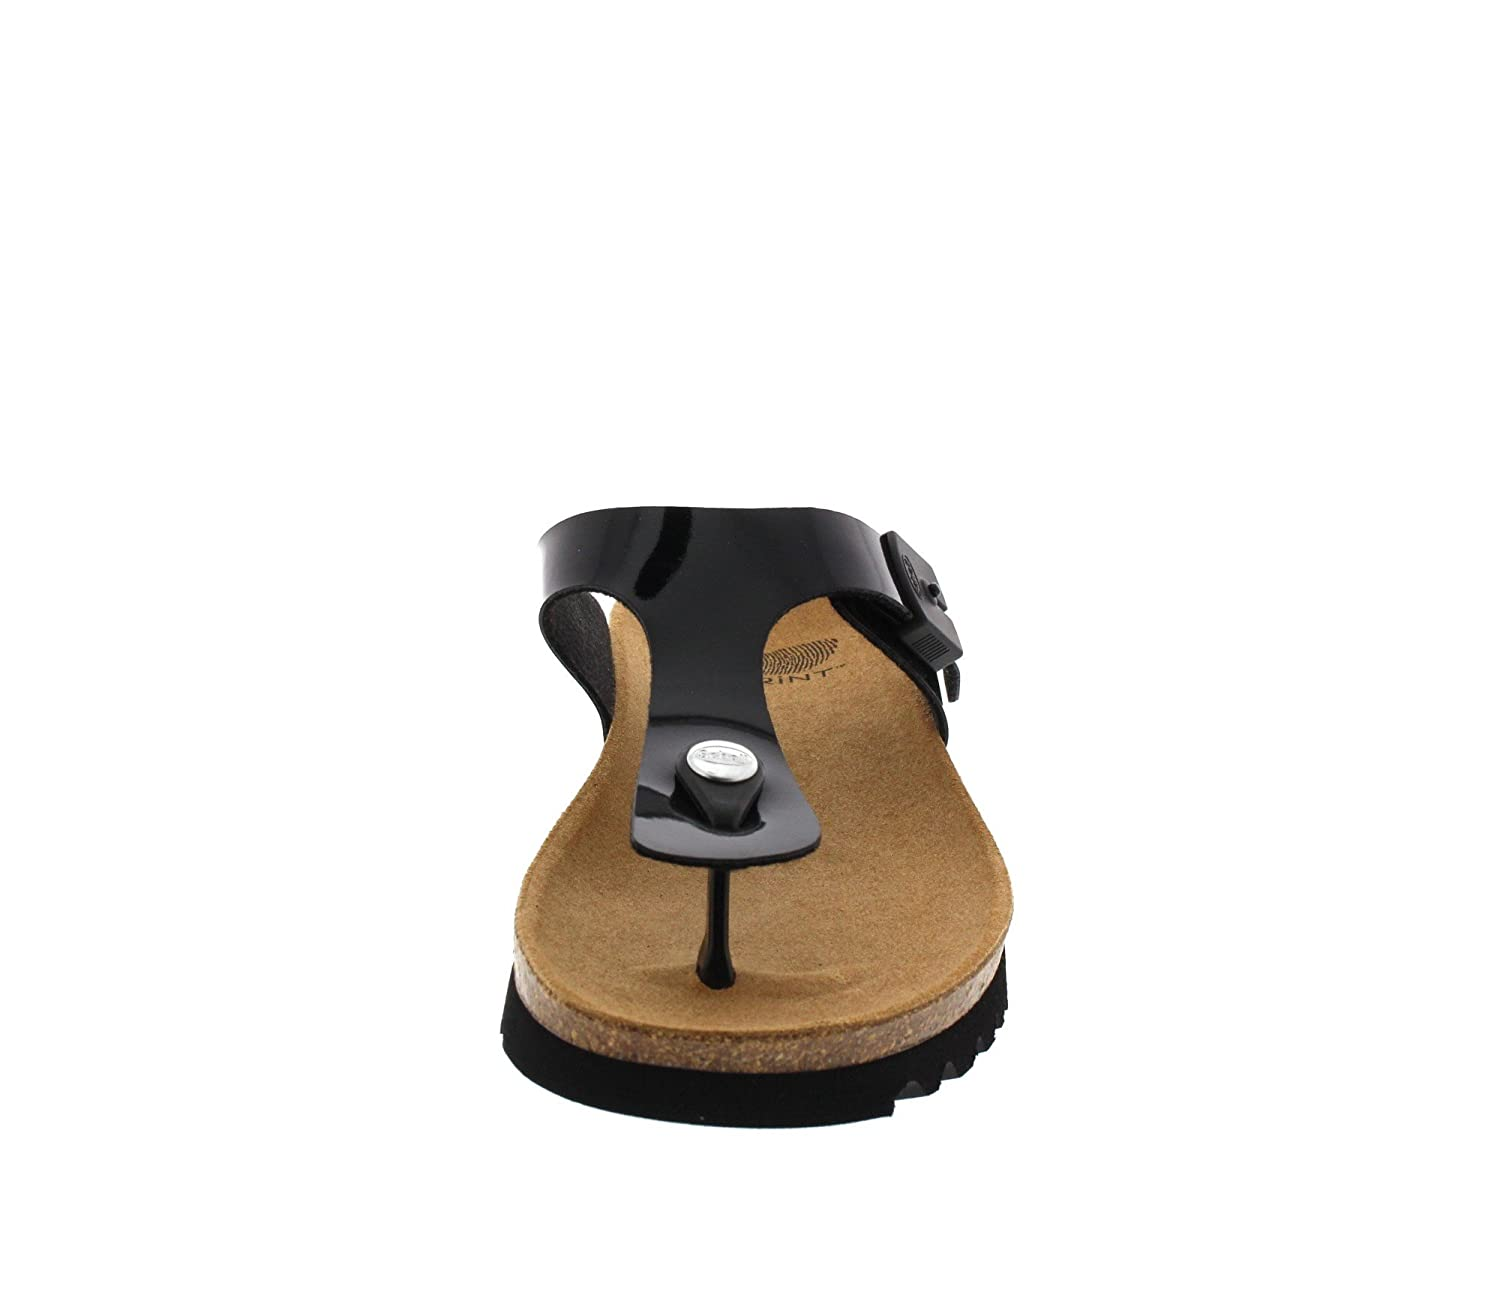 Scholl Patent Boa Vista Up schwarz Patent Scholl Synthetic 38 - a743d1